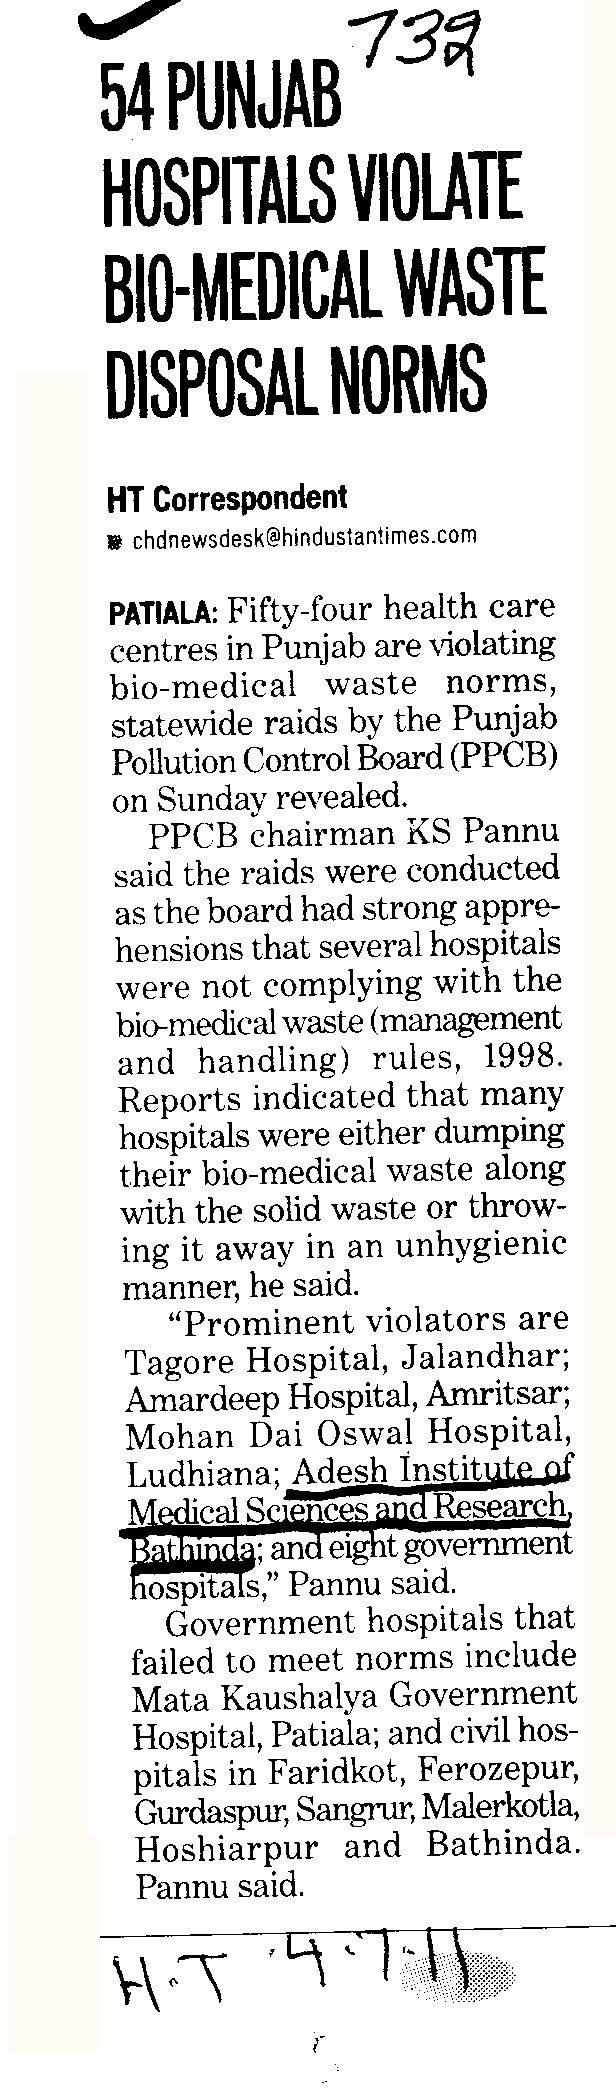 54 Punjab Hospitals violate Biomedical waste Disposal Norms (Adesh Institute of Medical Sciences and Research)